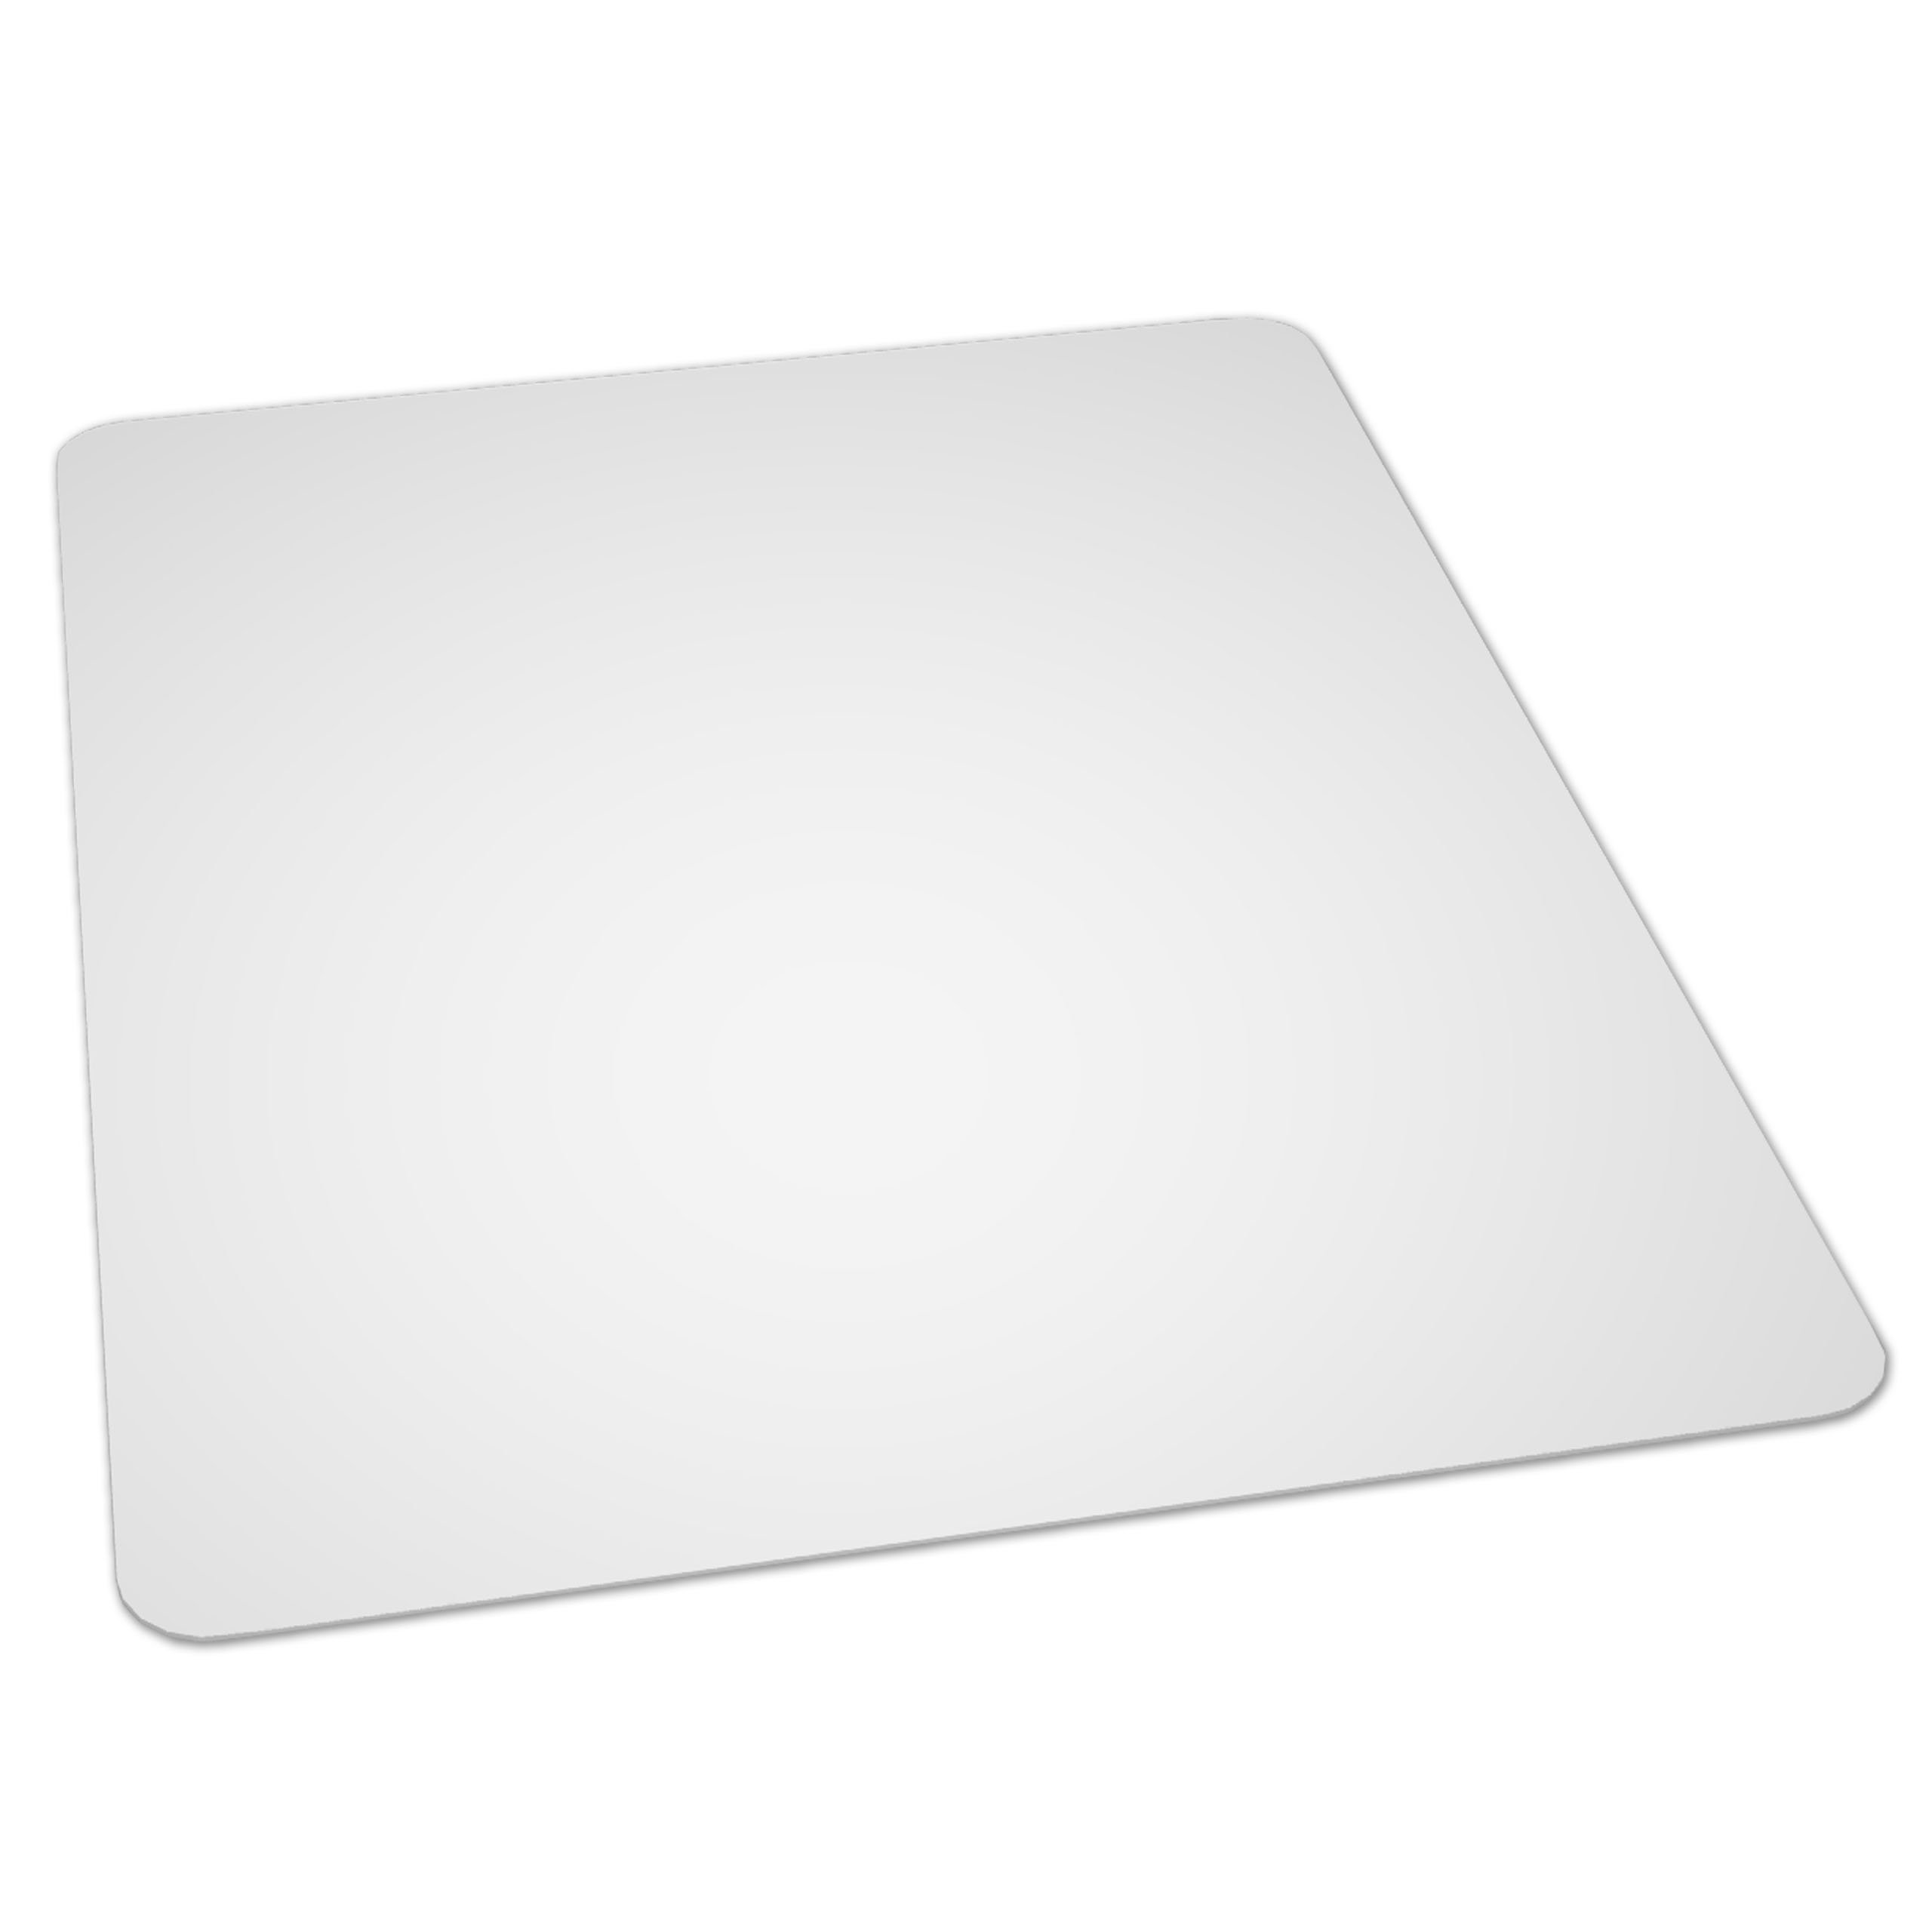 ES Robbins EverLife 46-Inch by 60-Inch Multitask Series Hard Floor Rectangle Vinyl Chair Mat, Clear